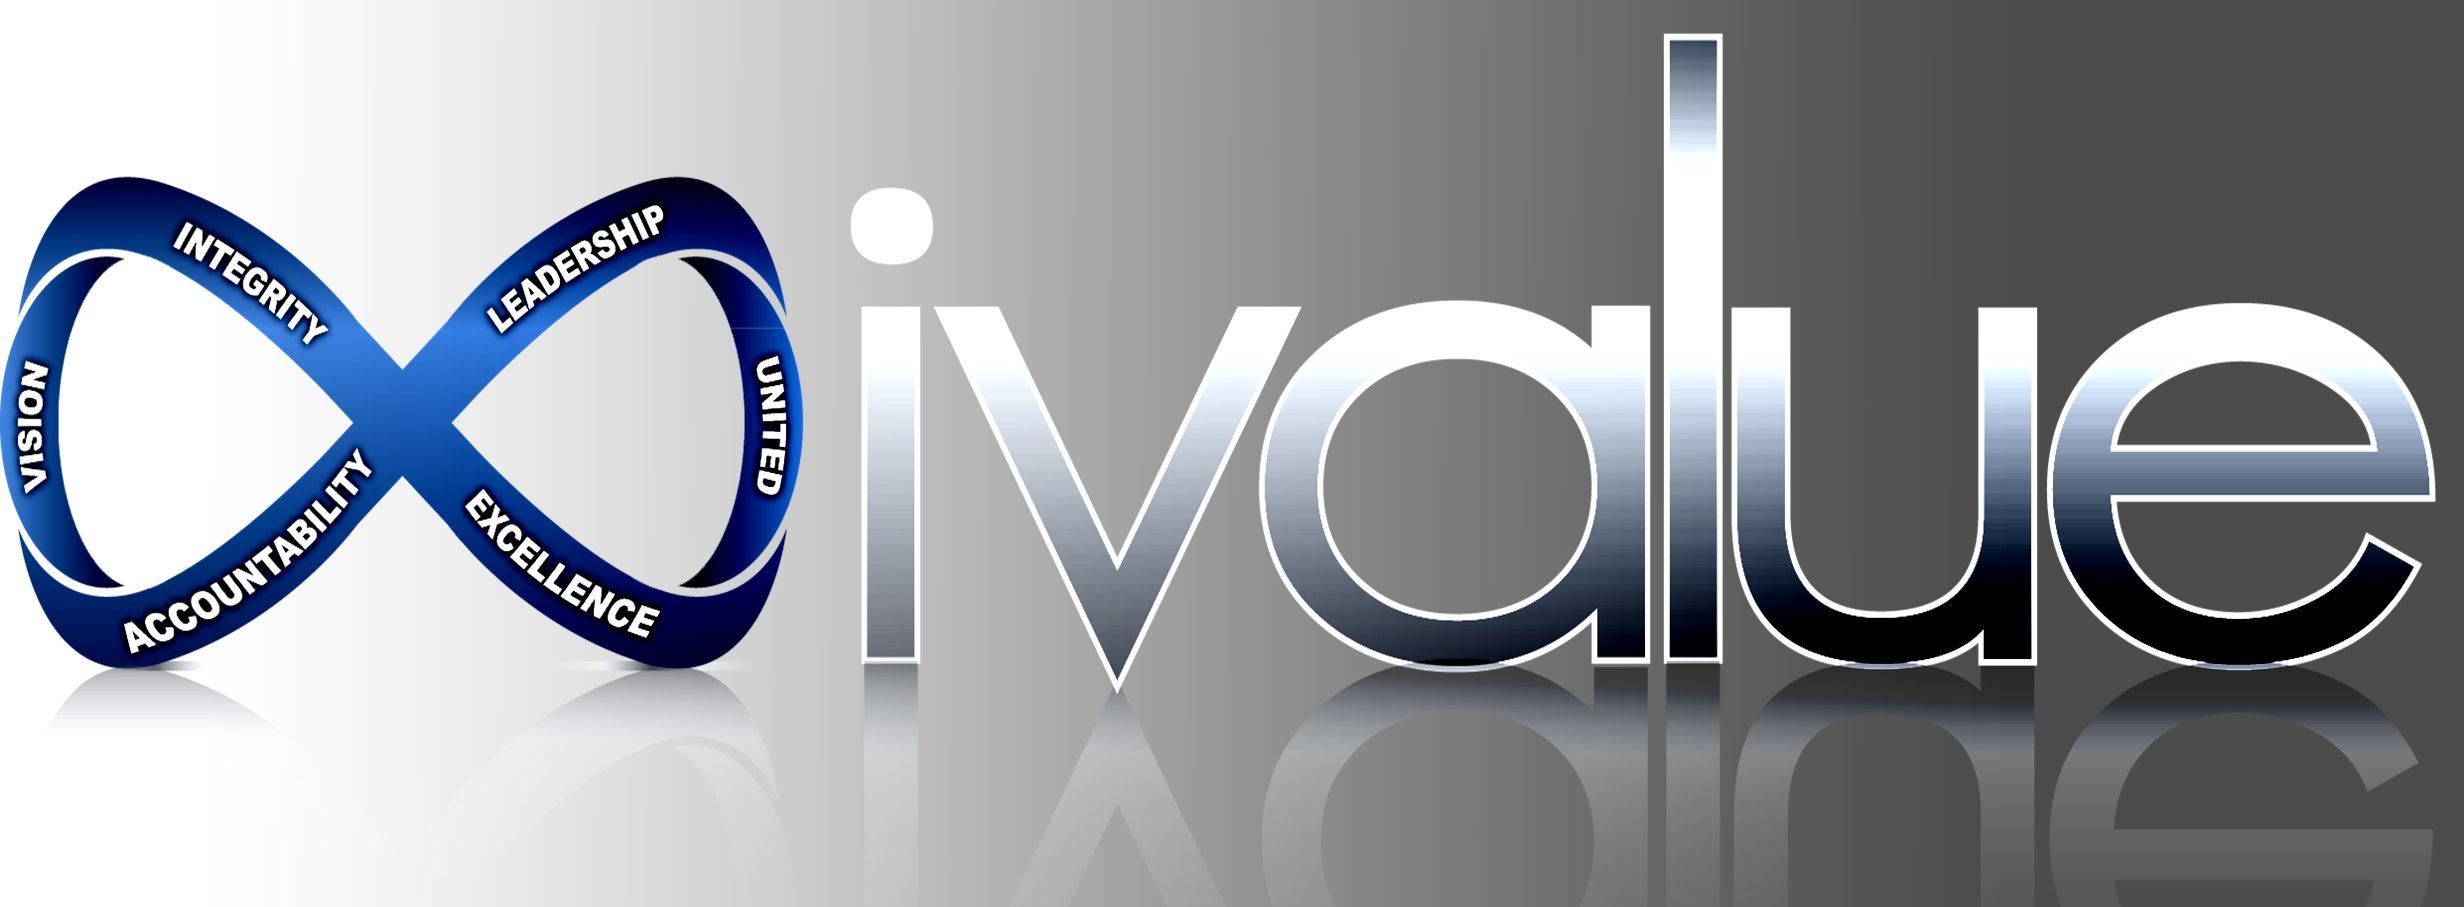 IValue Logo - Integrity, Vision, Accountability, Leadership, United, Excellence